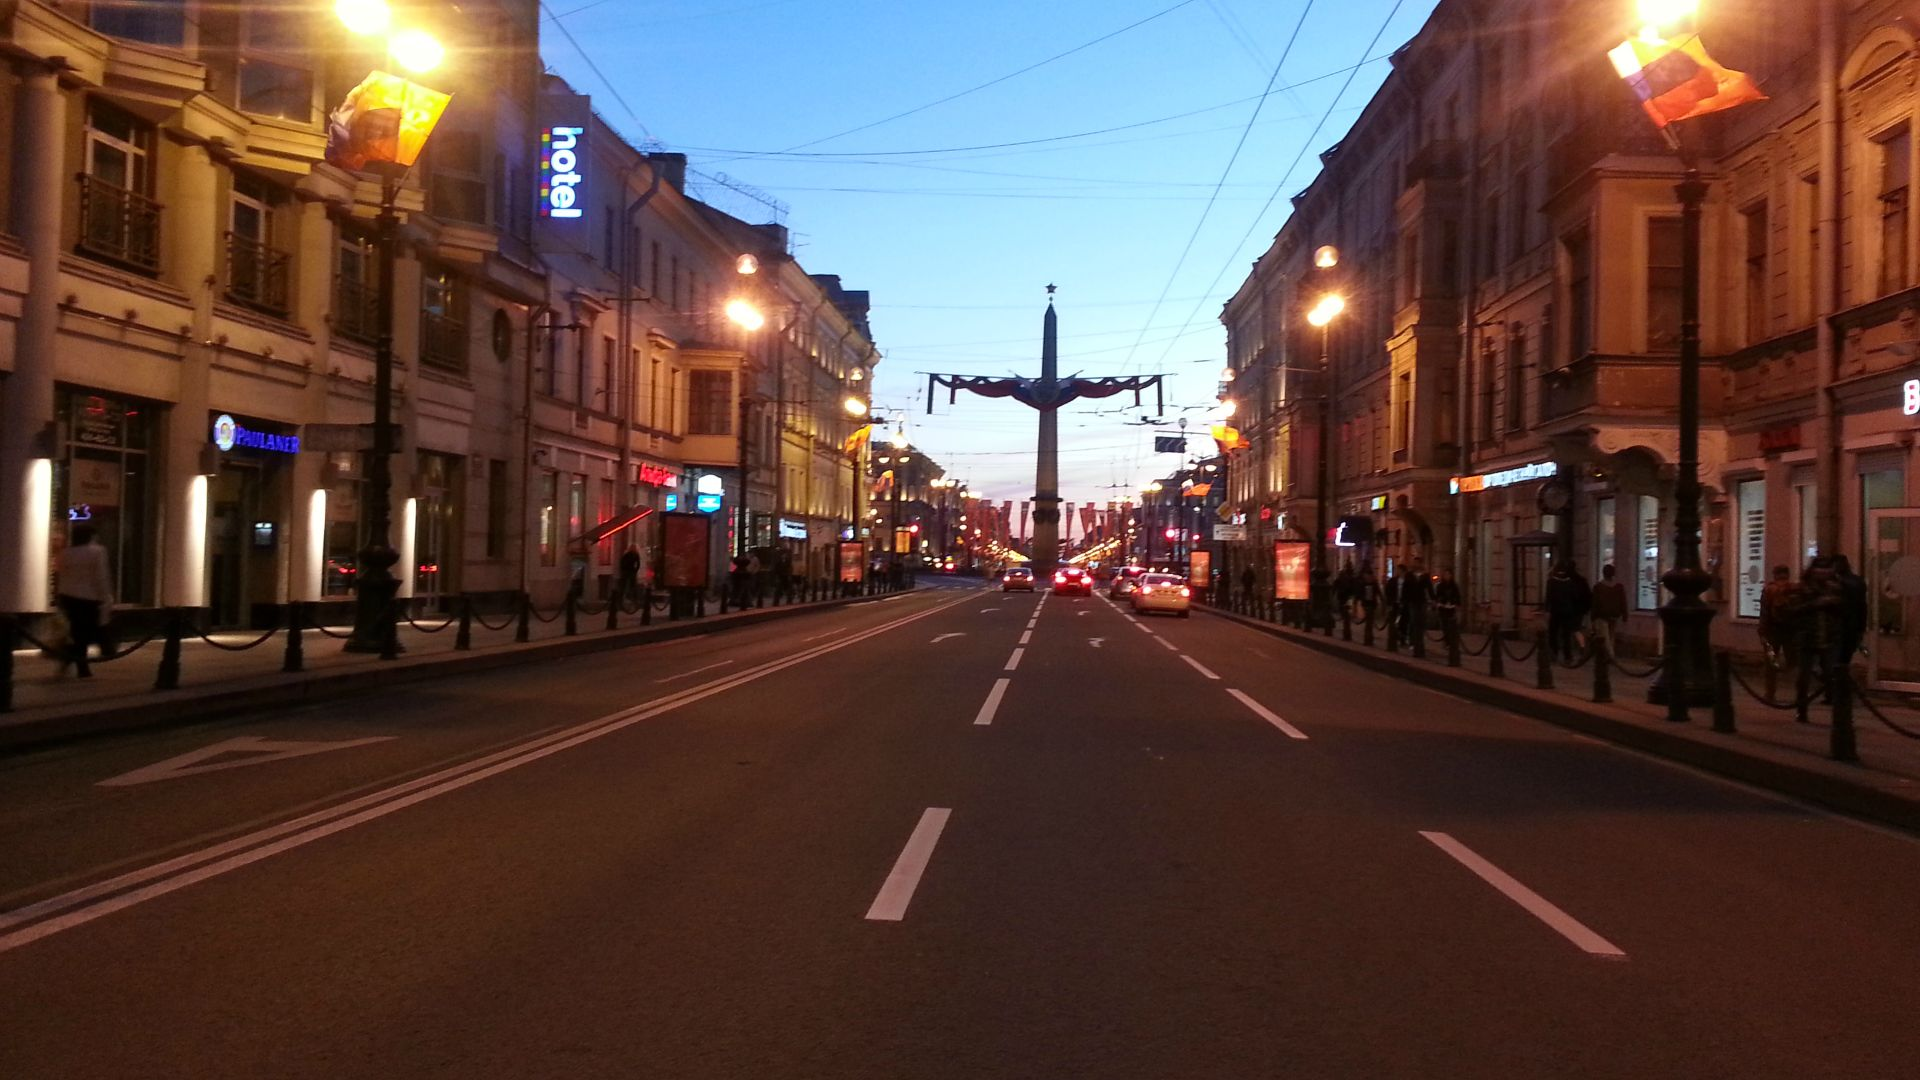 A typical St. Petersburg street